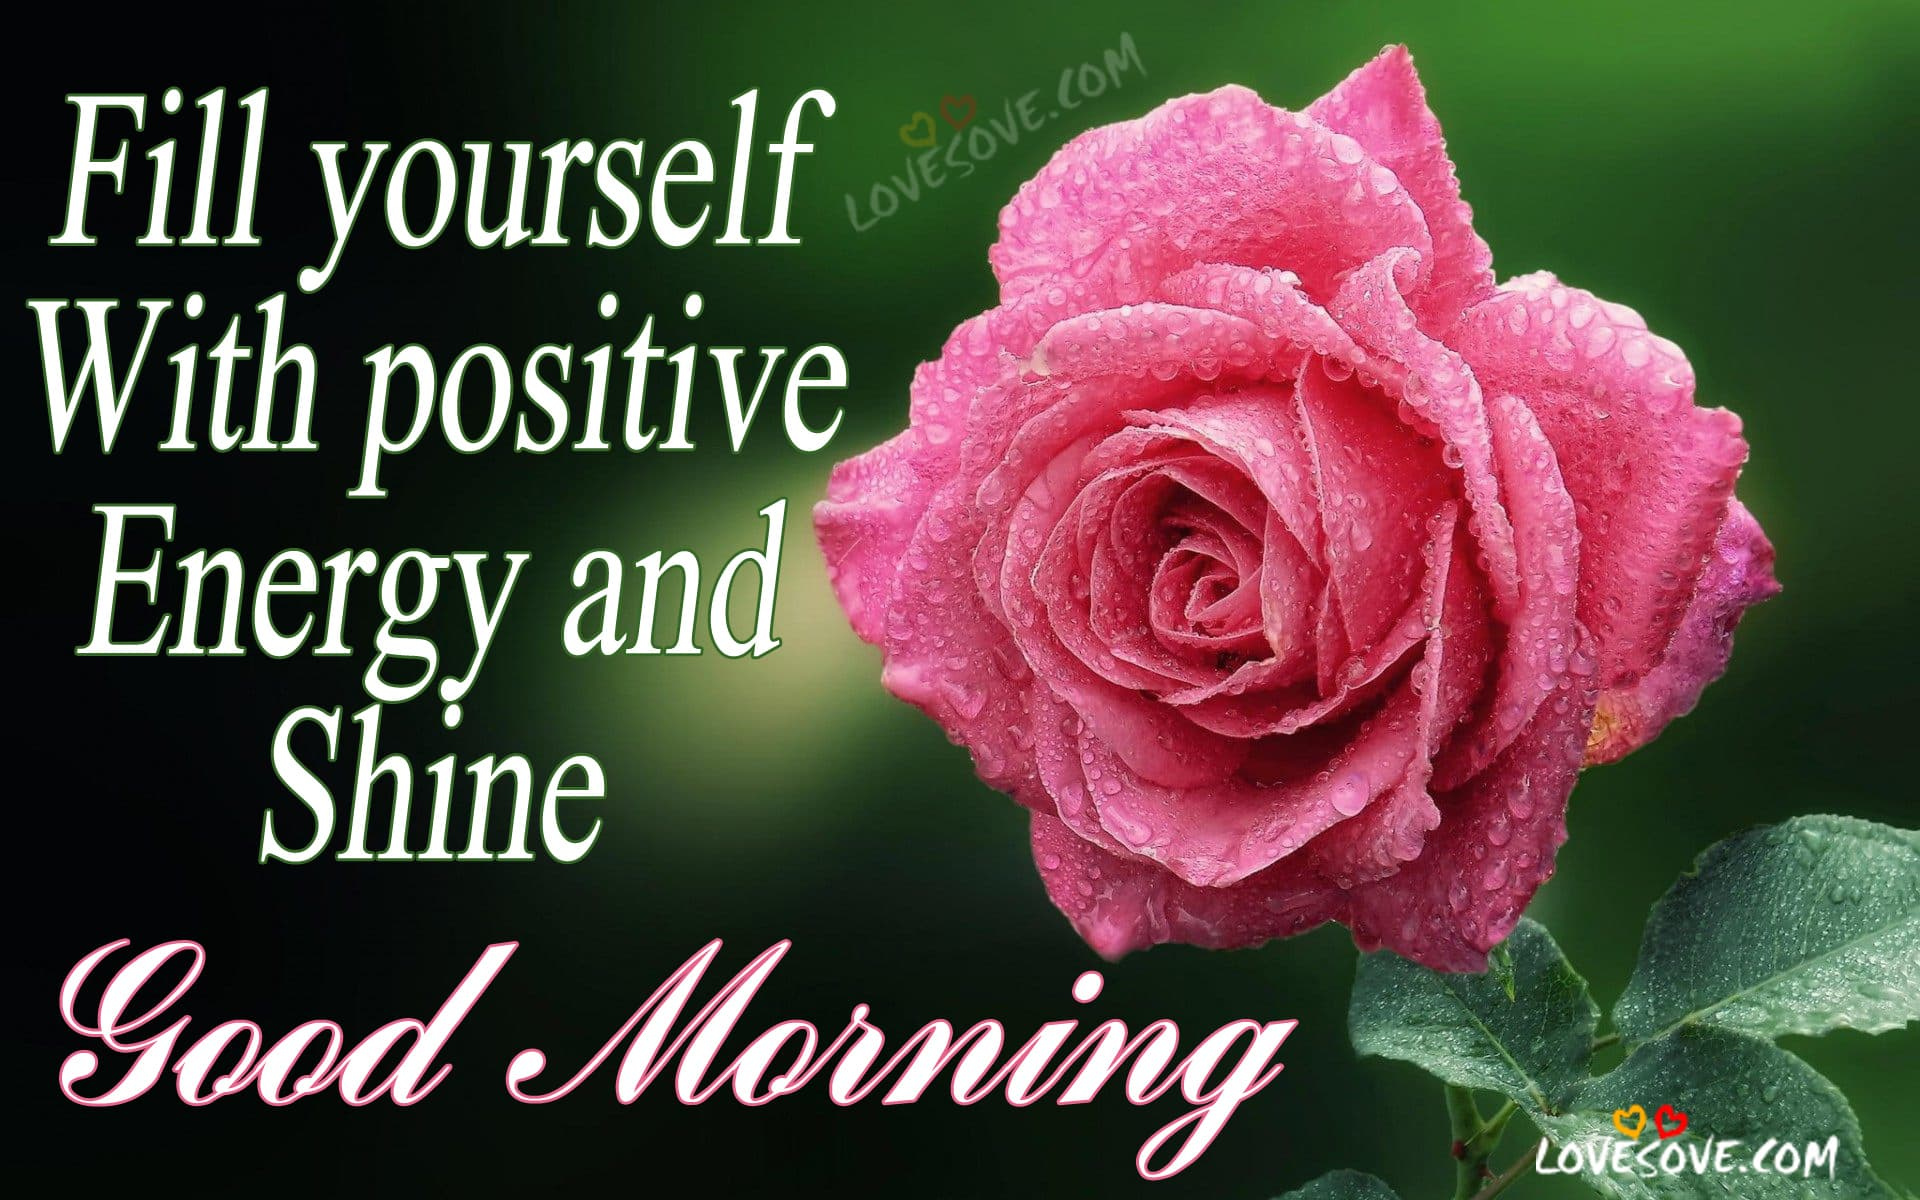 Fill yourself with positive energy and shine, Good Morning